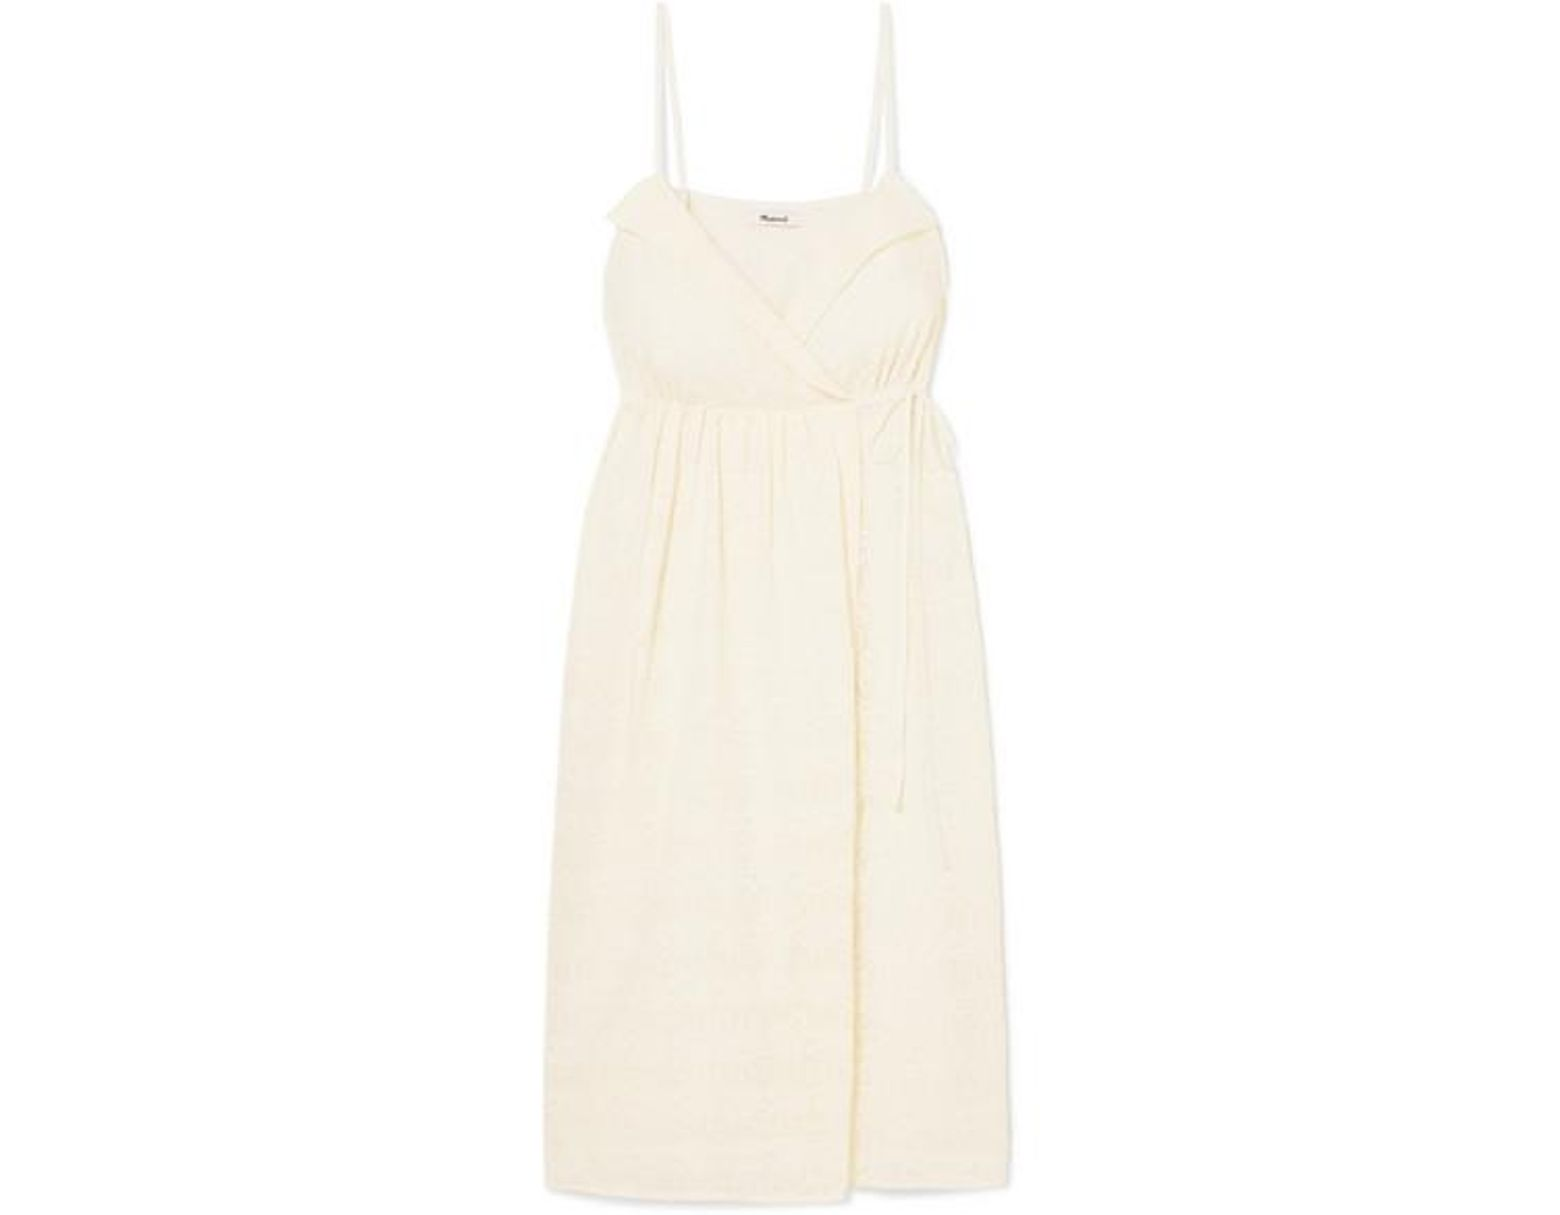 9a5ce5dd60 Madewell Pleated Embroidered Voile Wrap Dress in Natural - Lyst